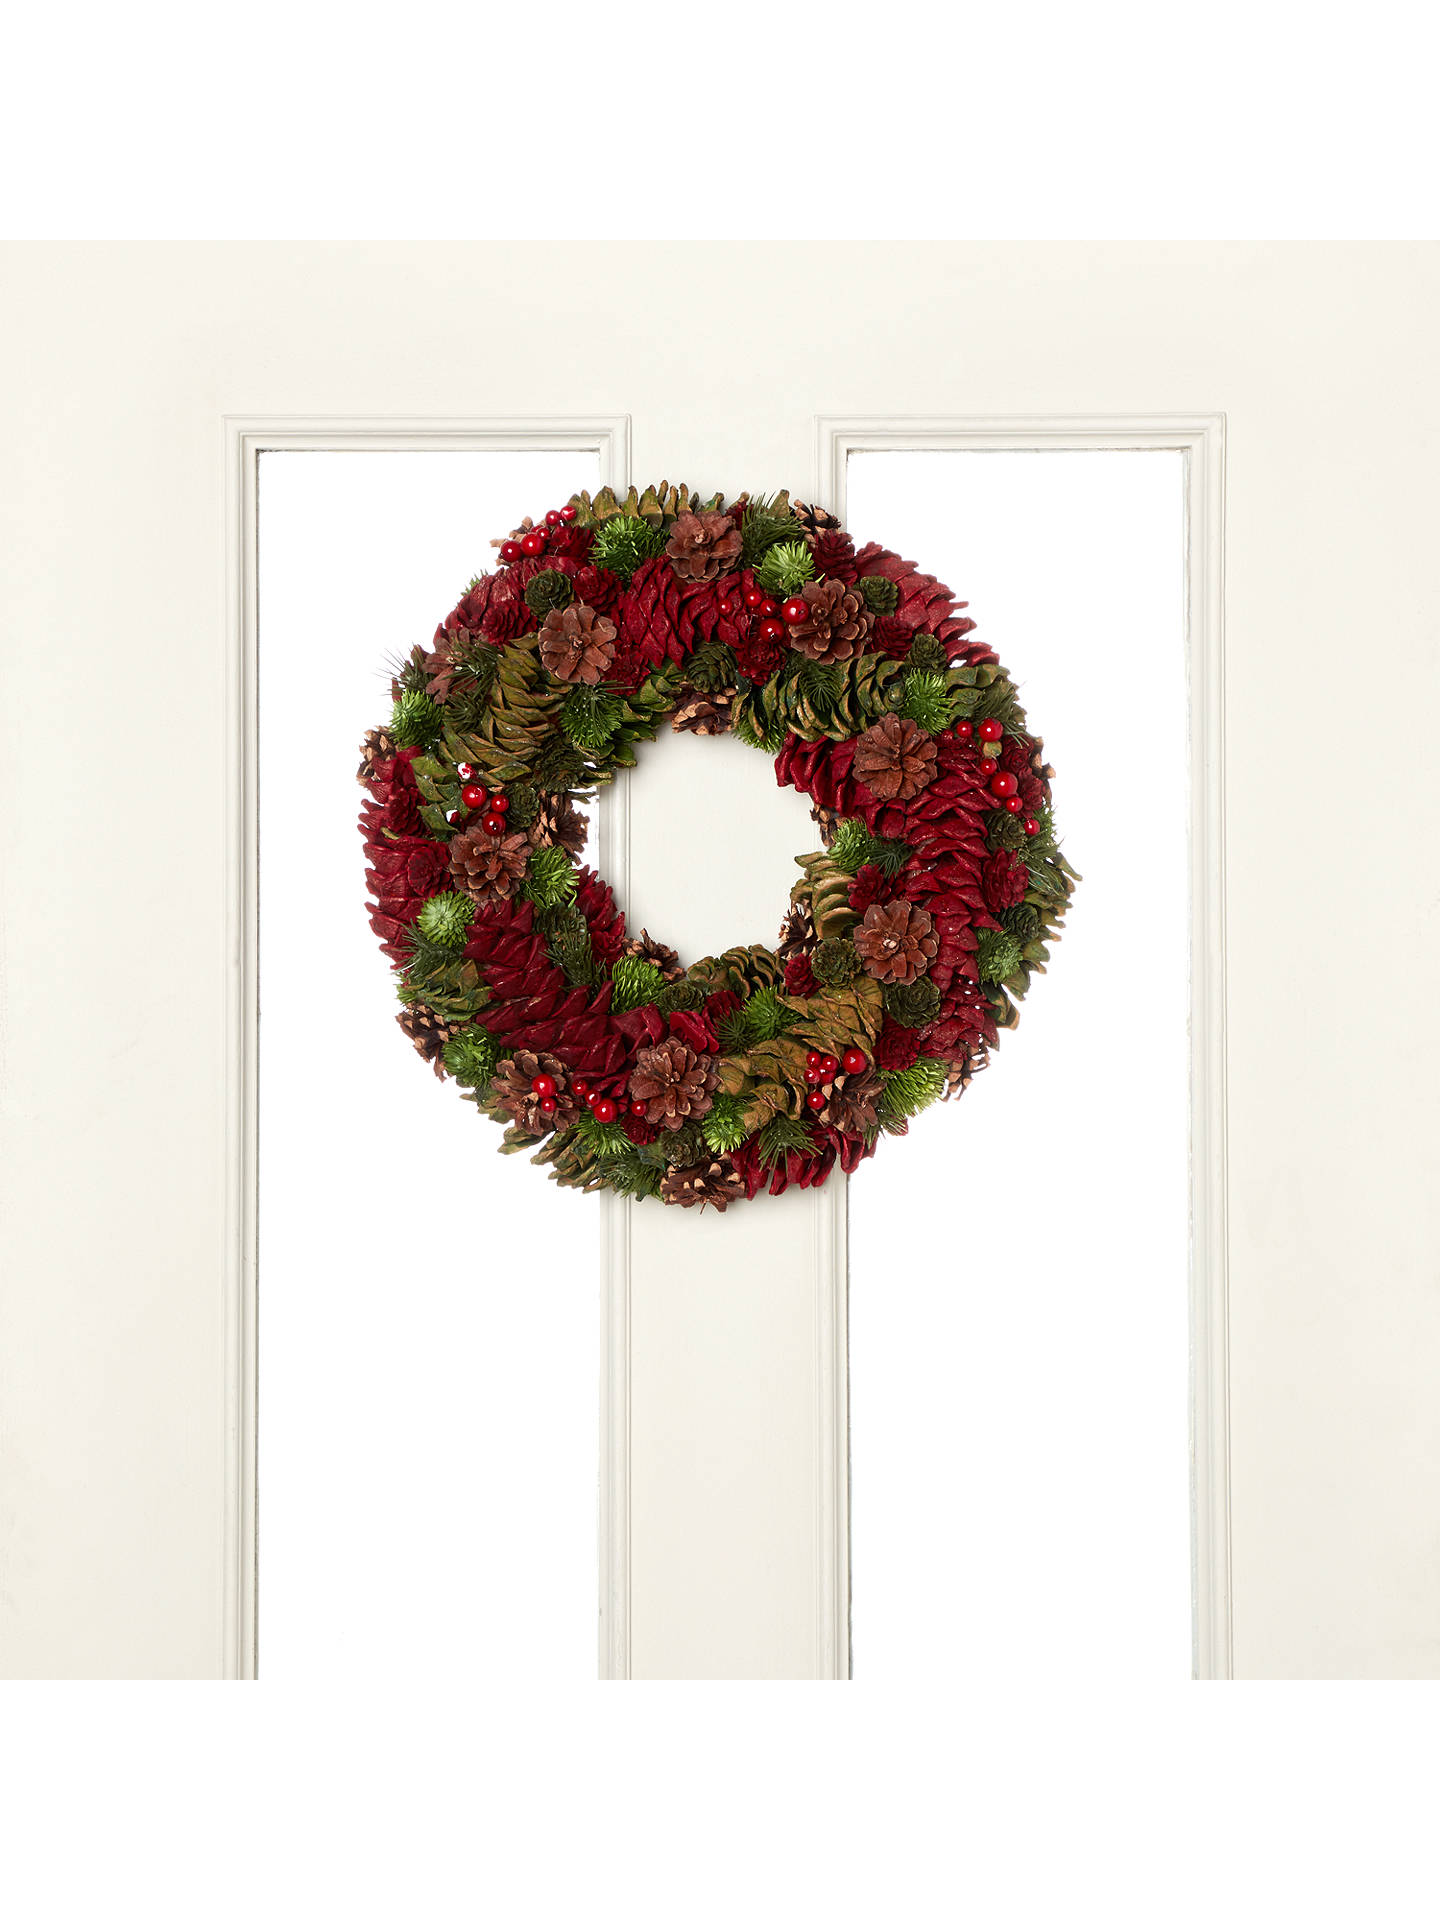 John lewis cone wreath dia38cm red green at john lewis partners buyjohn lewis cone wreath dia38cm red green online at johnlewis izmirmasajfo